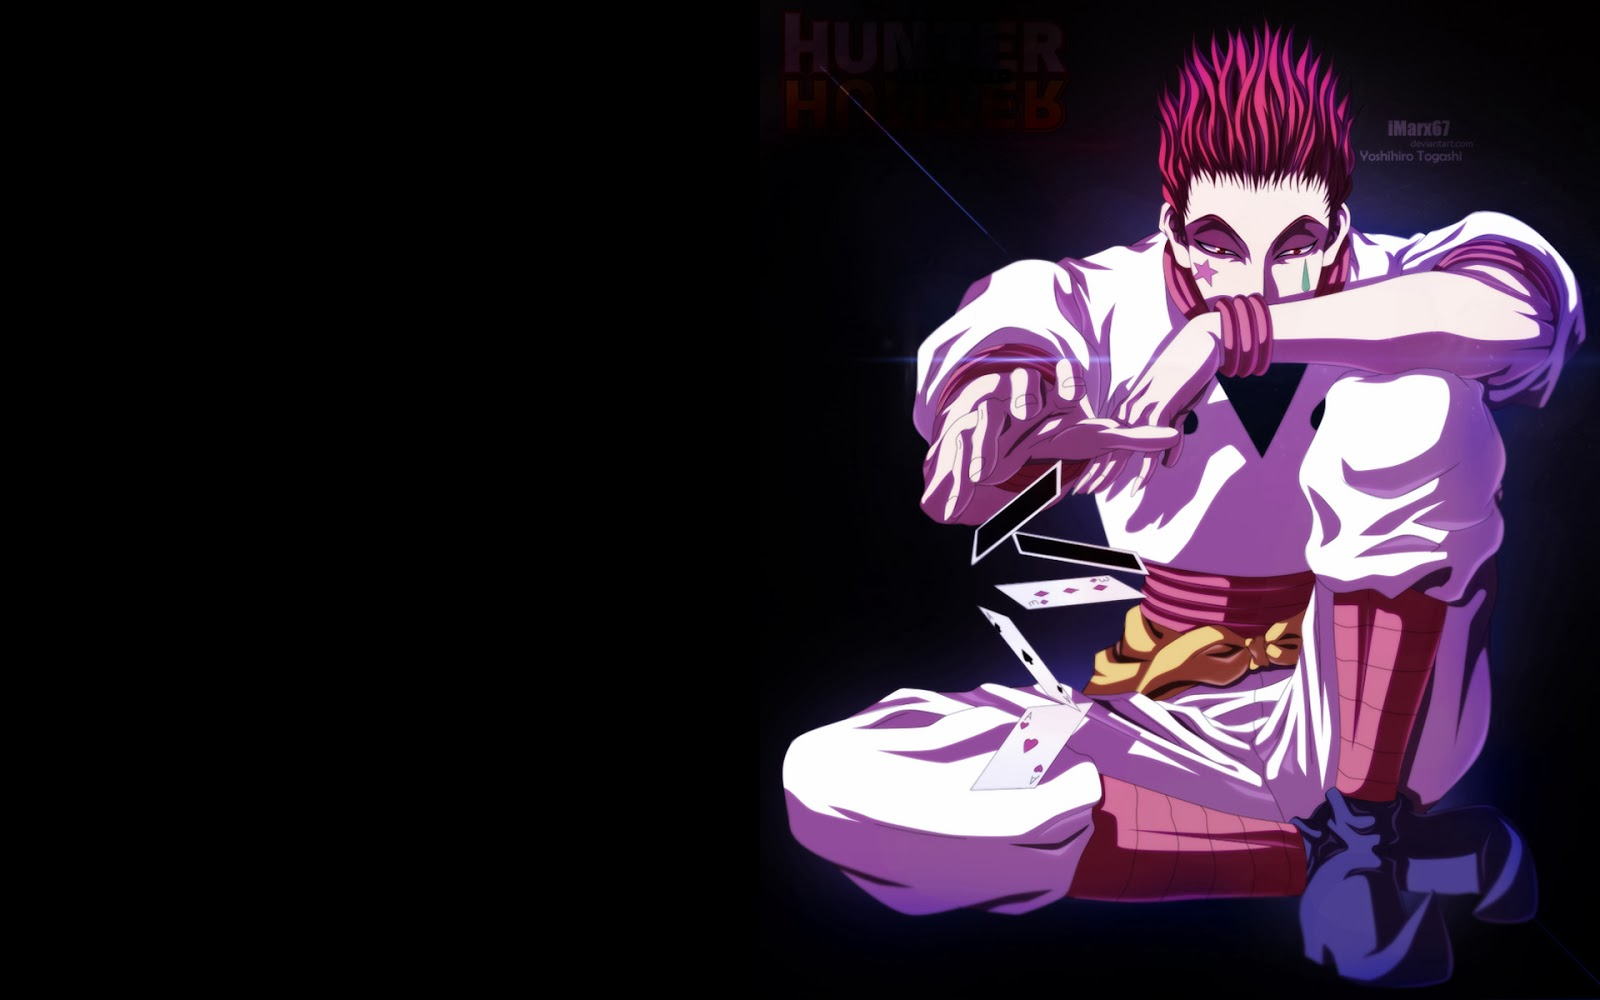 Hisoka Cards Deviant Art Male Hunter X Hunter 2011 Anime HD Wallpaper    Hisoka Wallpaper 1920x1080